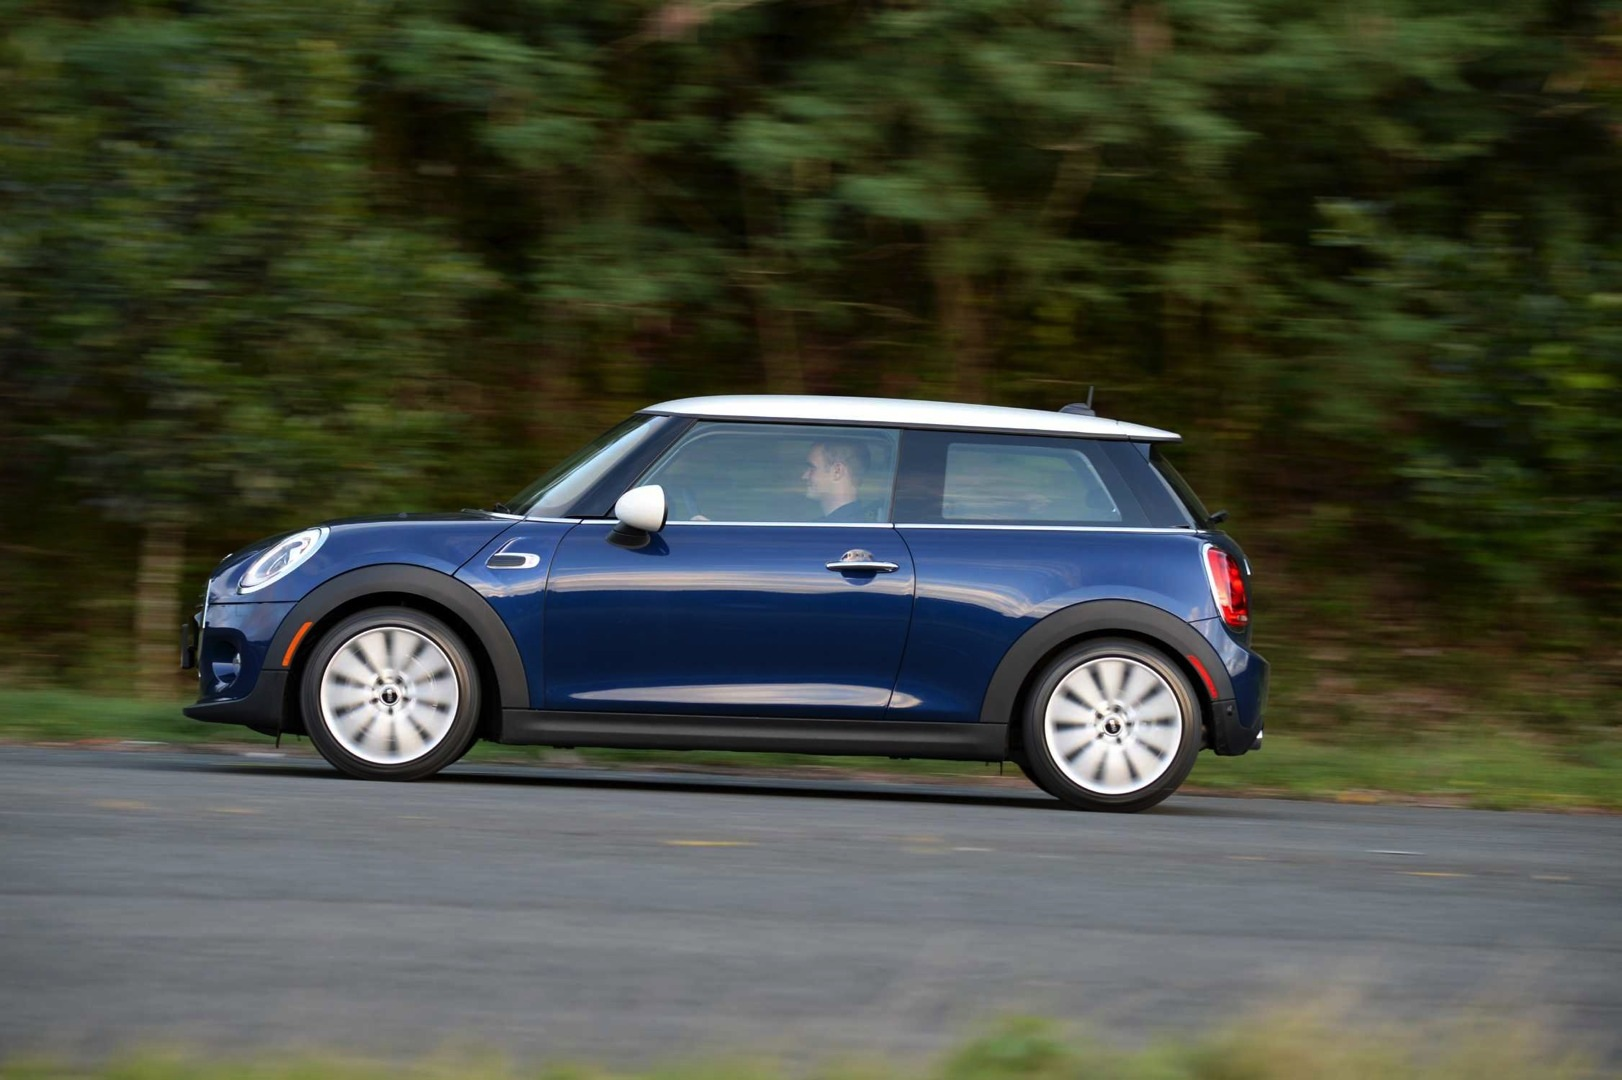 2014 MINI Cooper Wallpapers 1622x1080